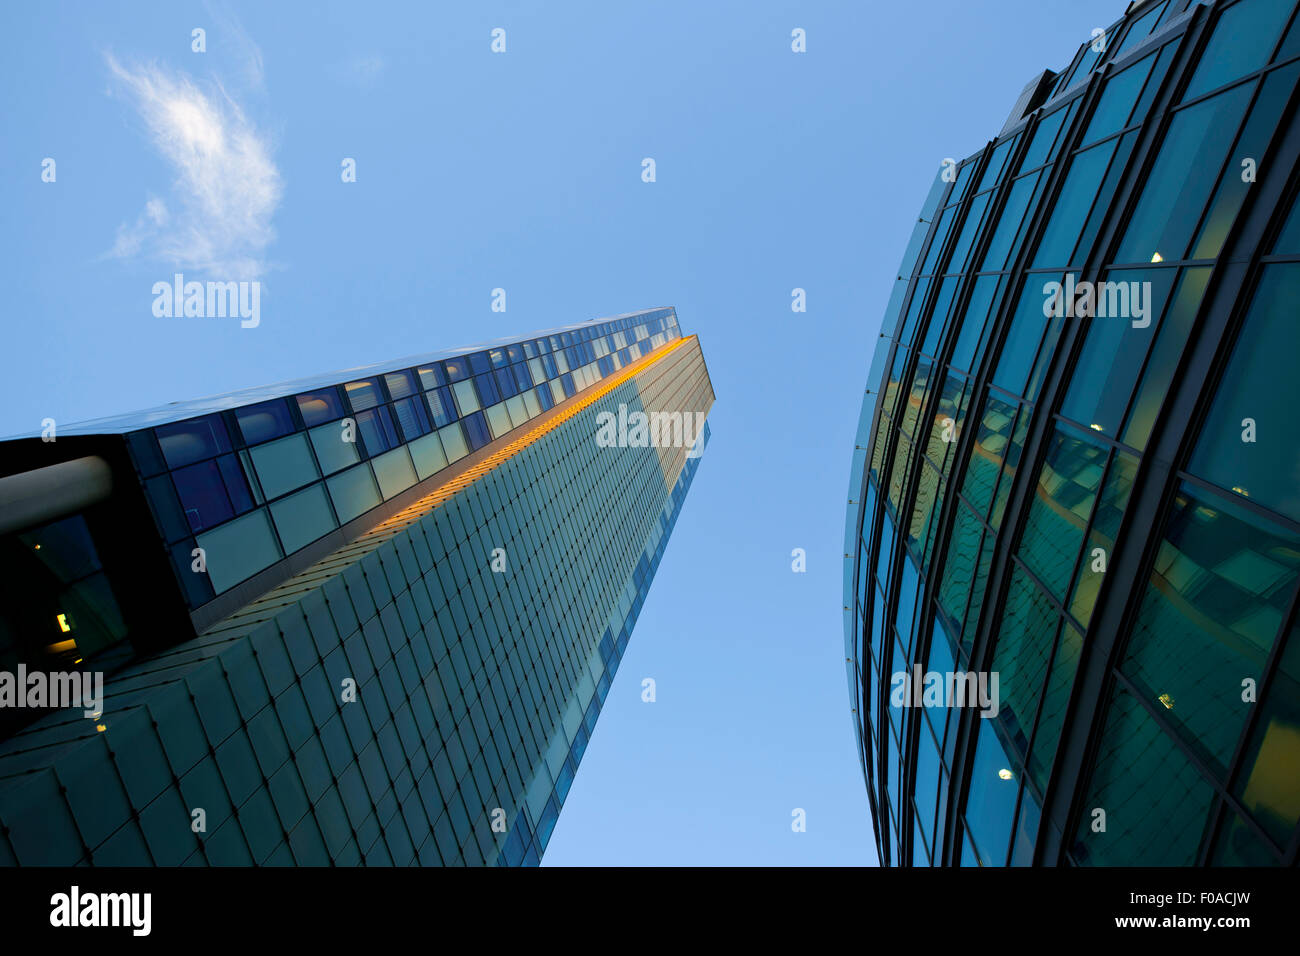 Modern office buildings, low angle view, Liverpool, UK - Stock Image